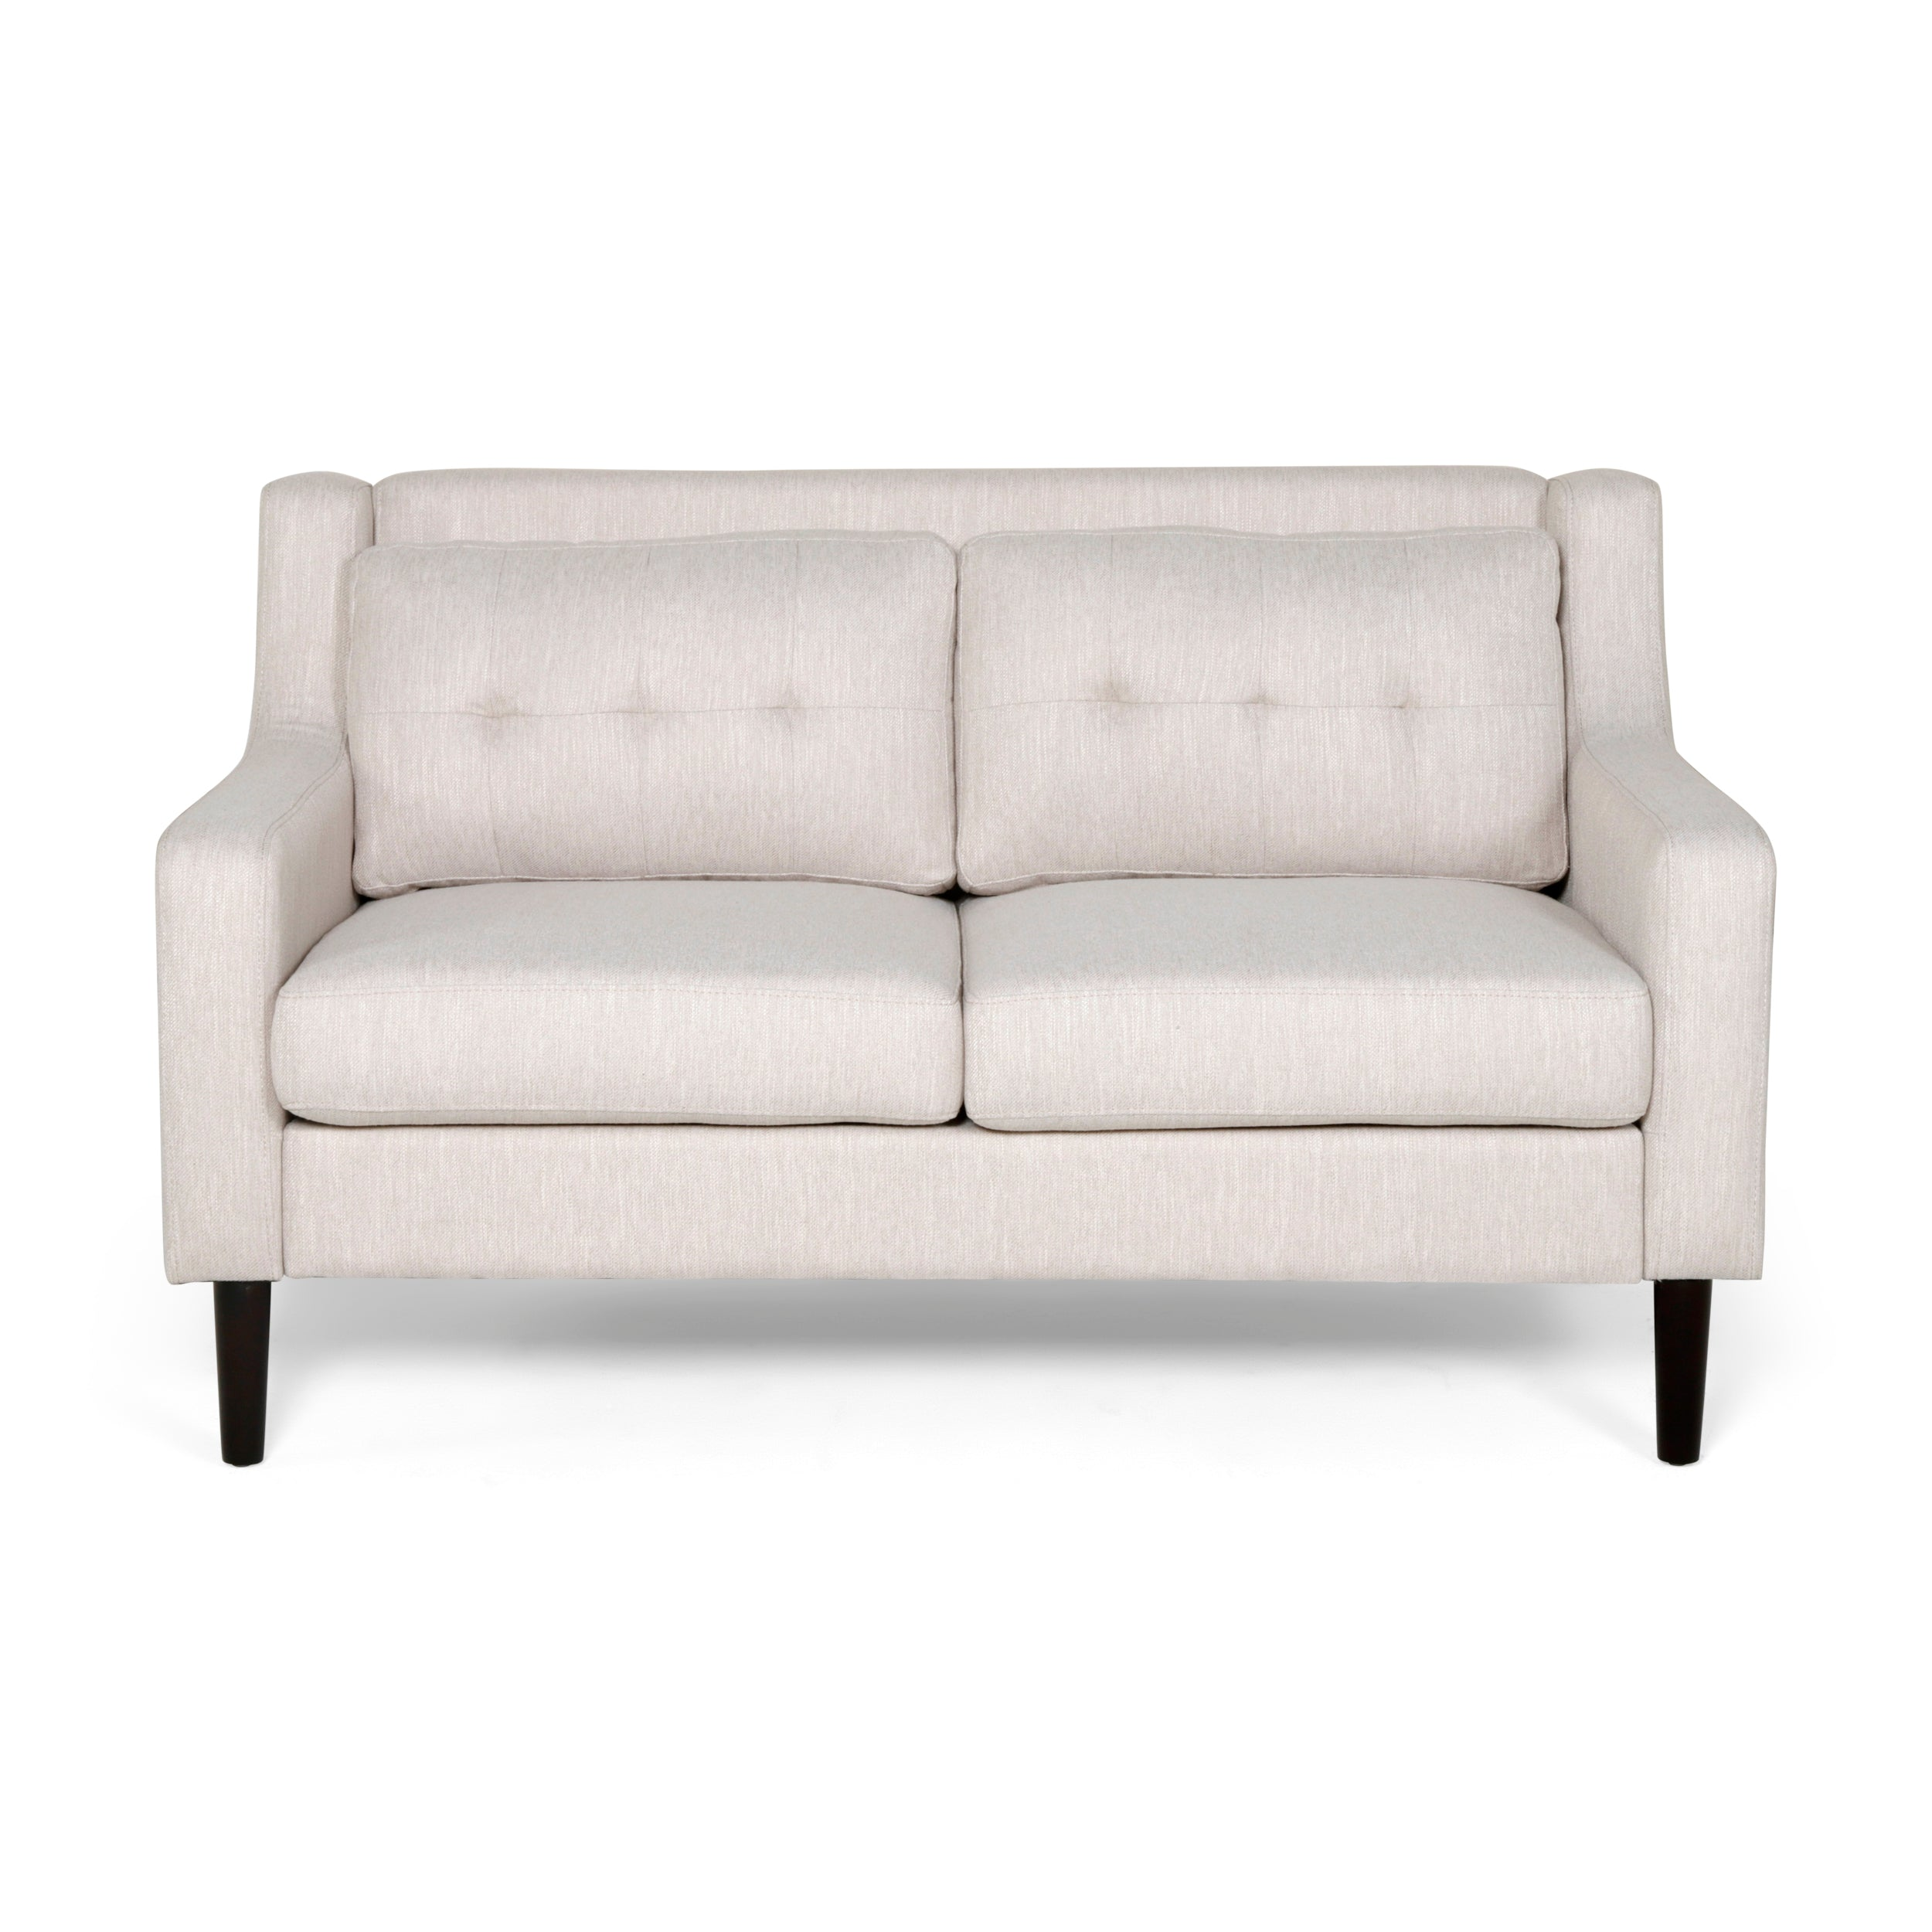 Anaysha Contemporary Fabric Loveseat Beige